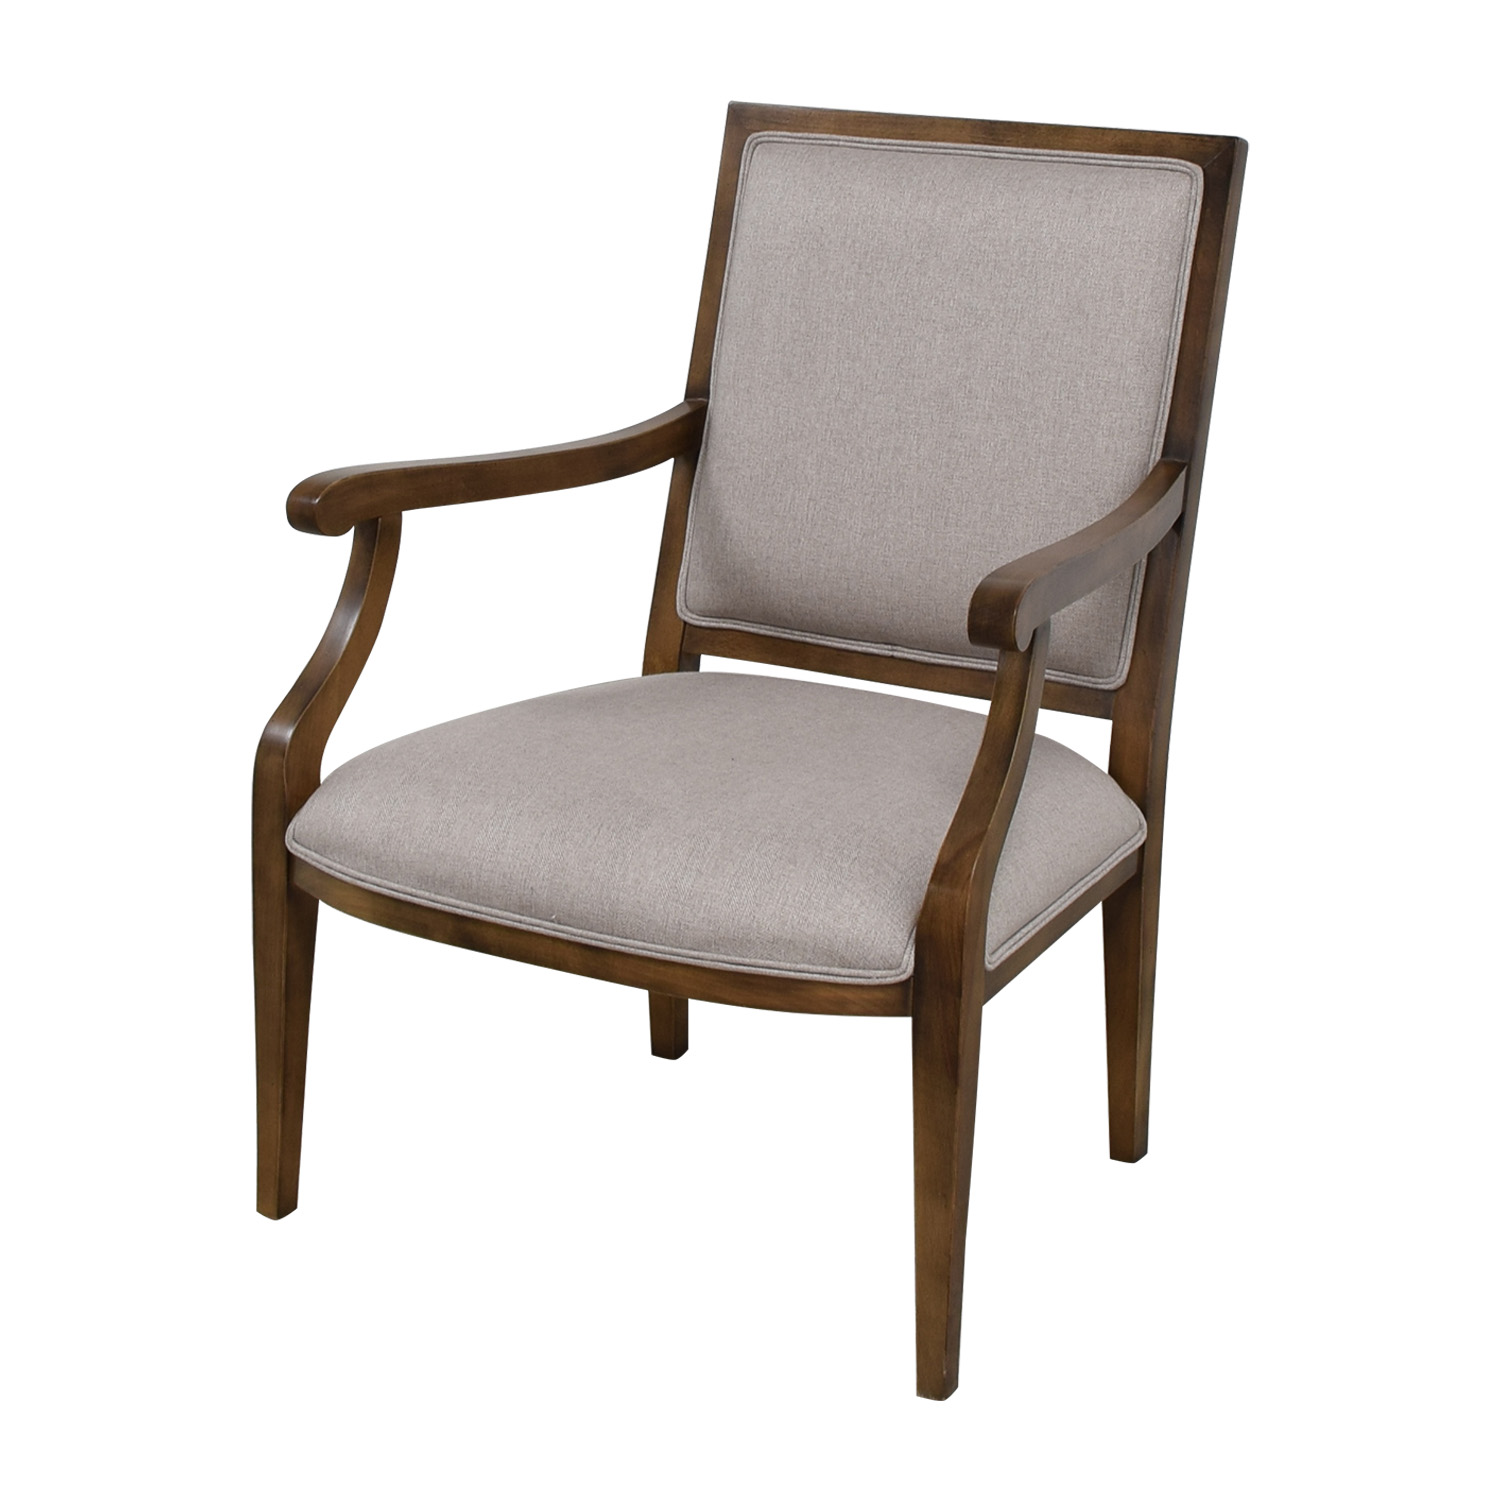 Restoration Hardware Restoration Hardware Grey Accent Chair on sale